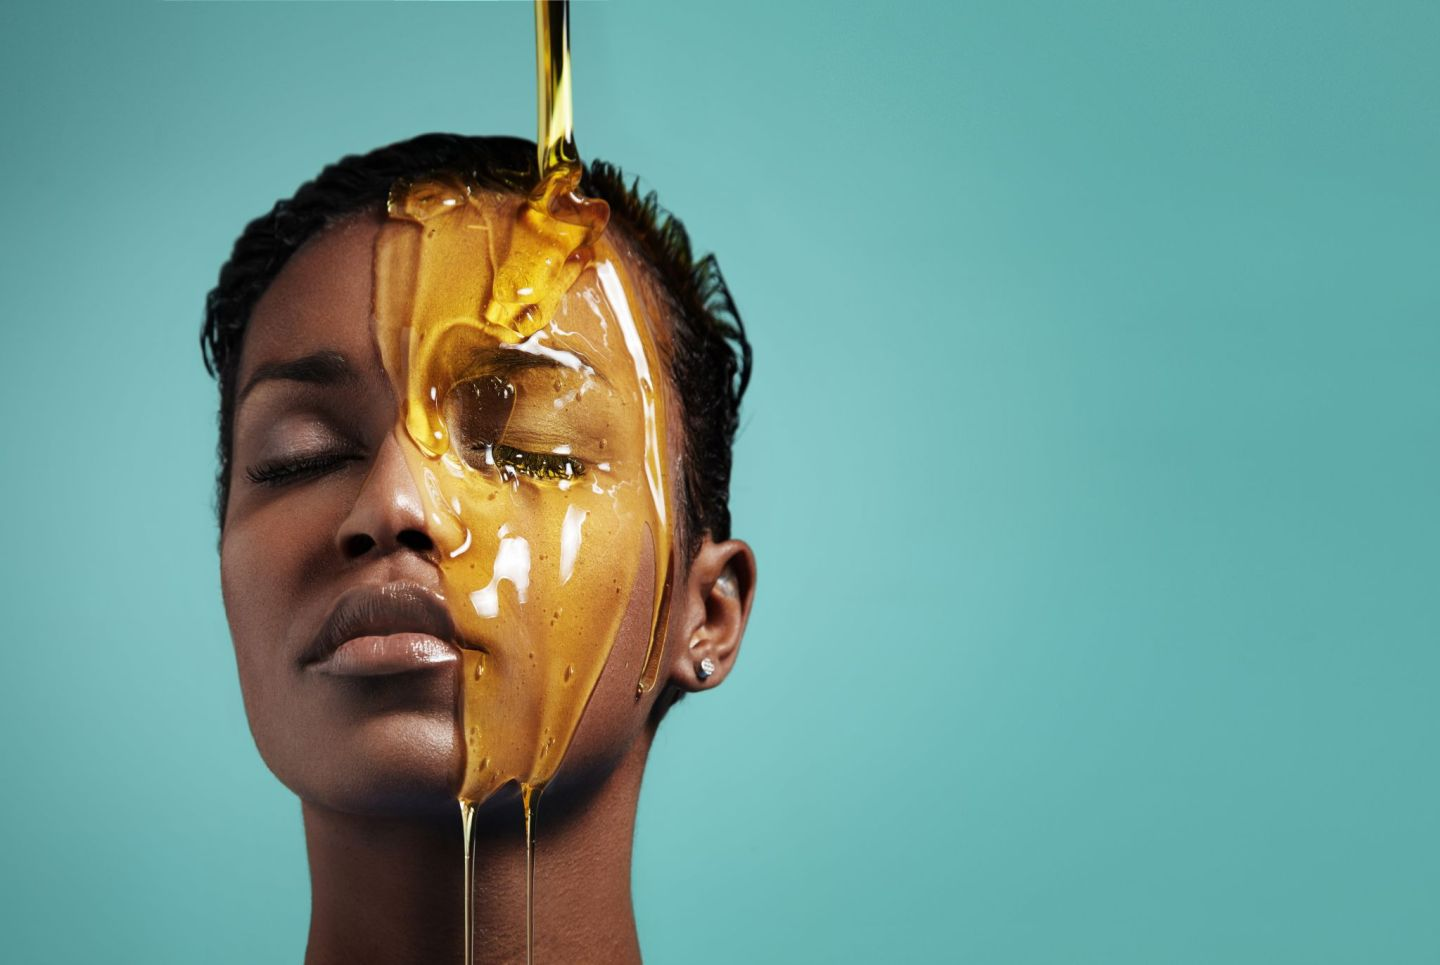 Good women hair care for natural hair starts with knowing what to do for each upcoming season. Get ready for fall and winter with these easy tips.